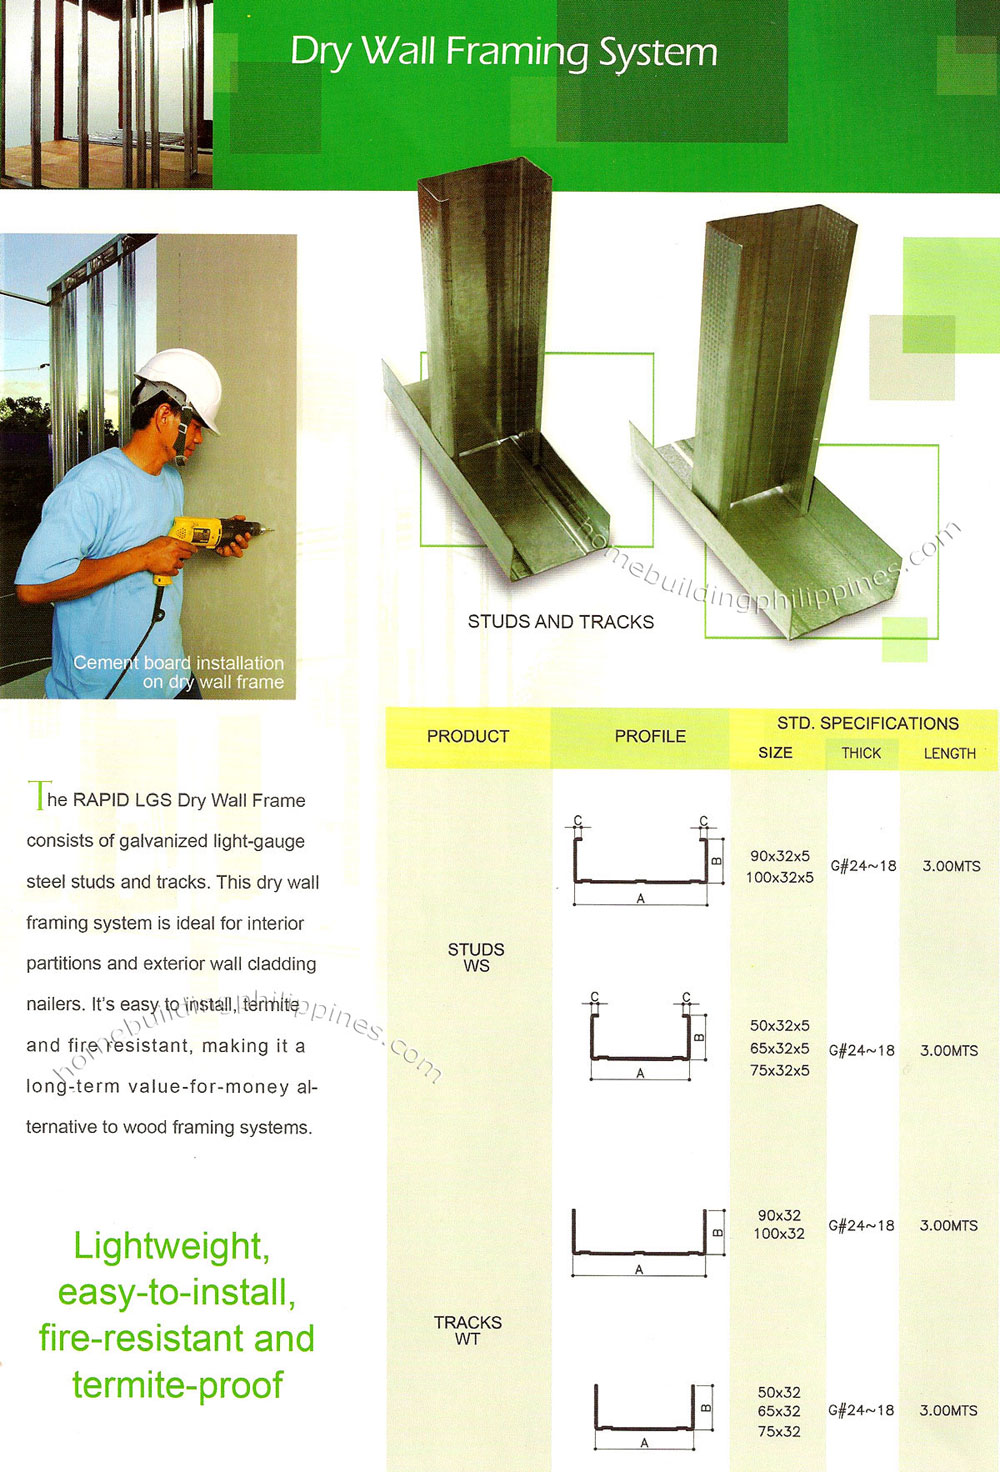 Dry Wall Framing System